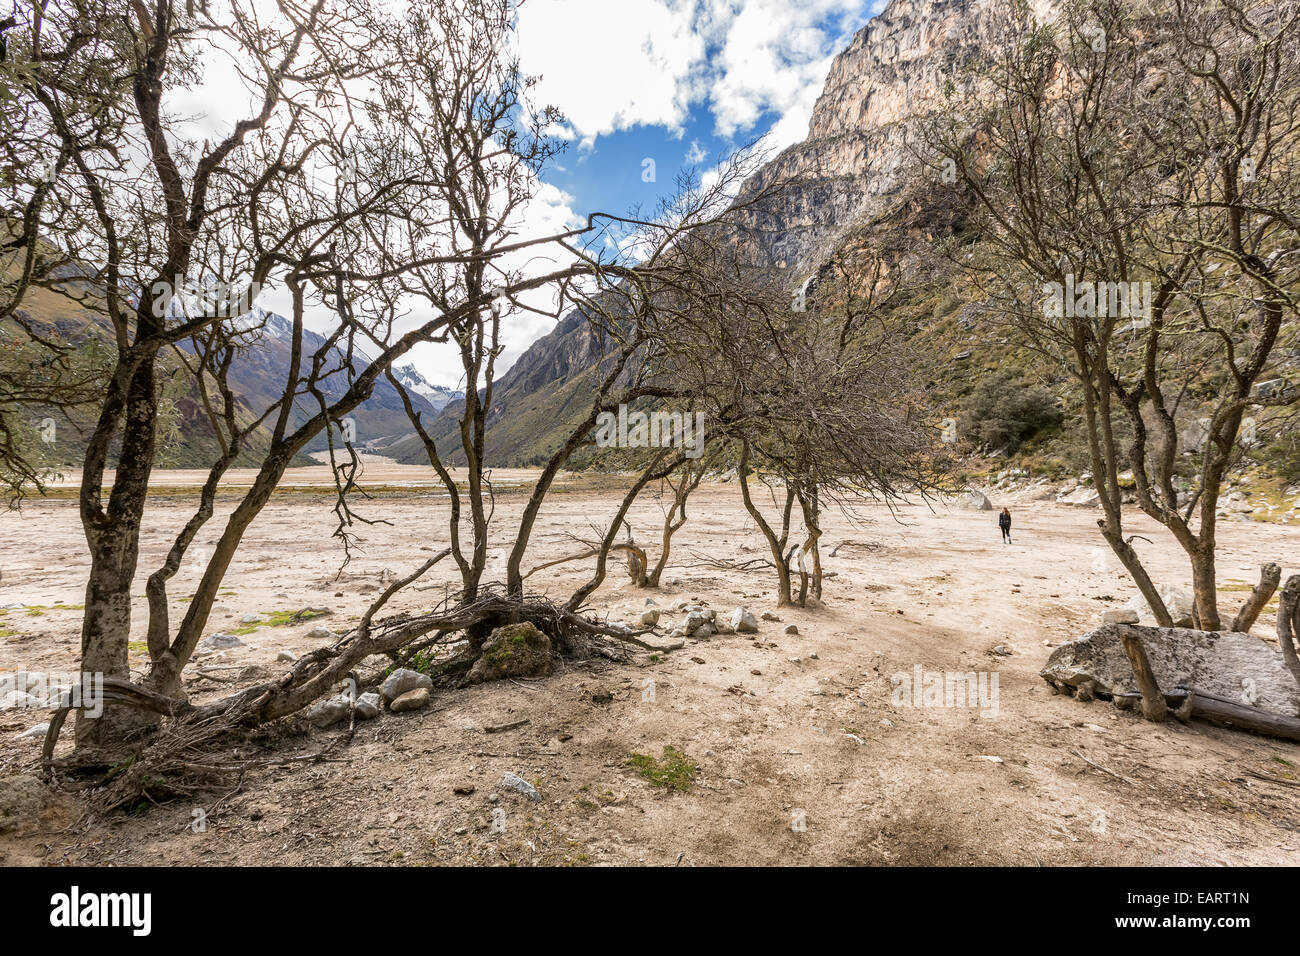 On Santa Cruz trek, Santa Cruz valley, Cordillera Blanca, Andes, Peru, South America - Stock Image